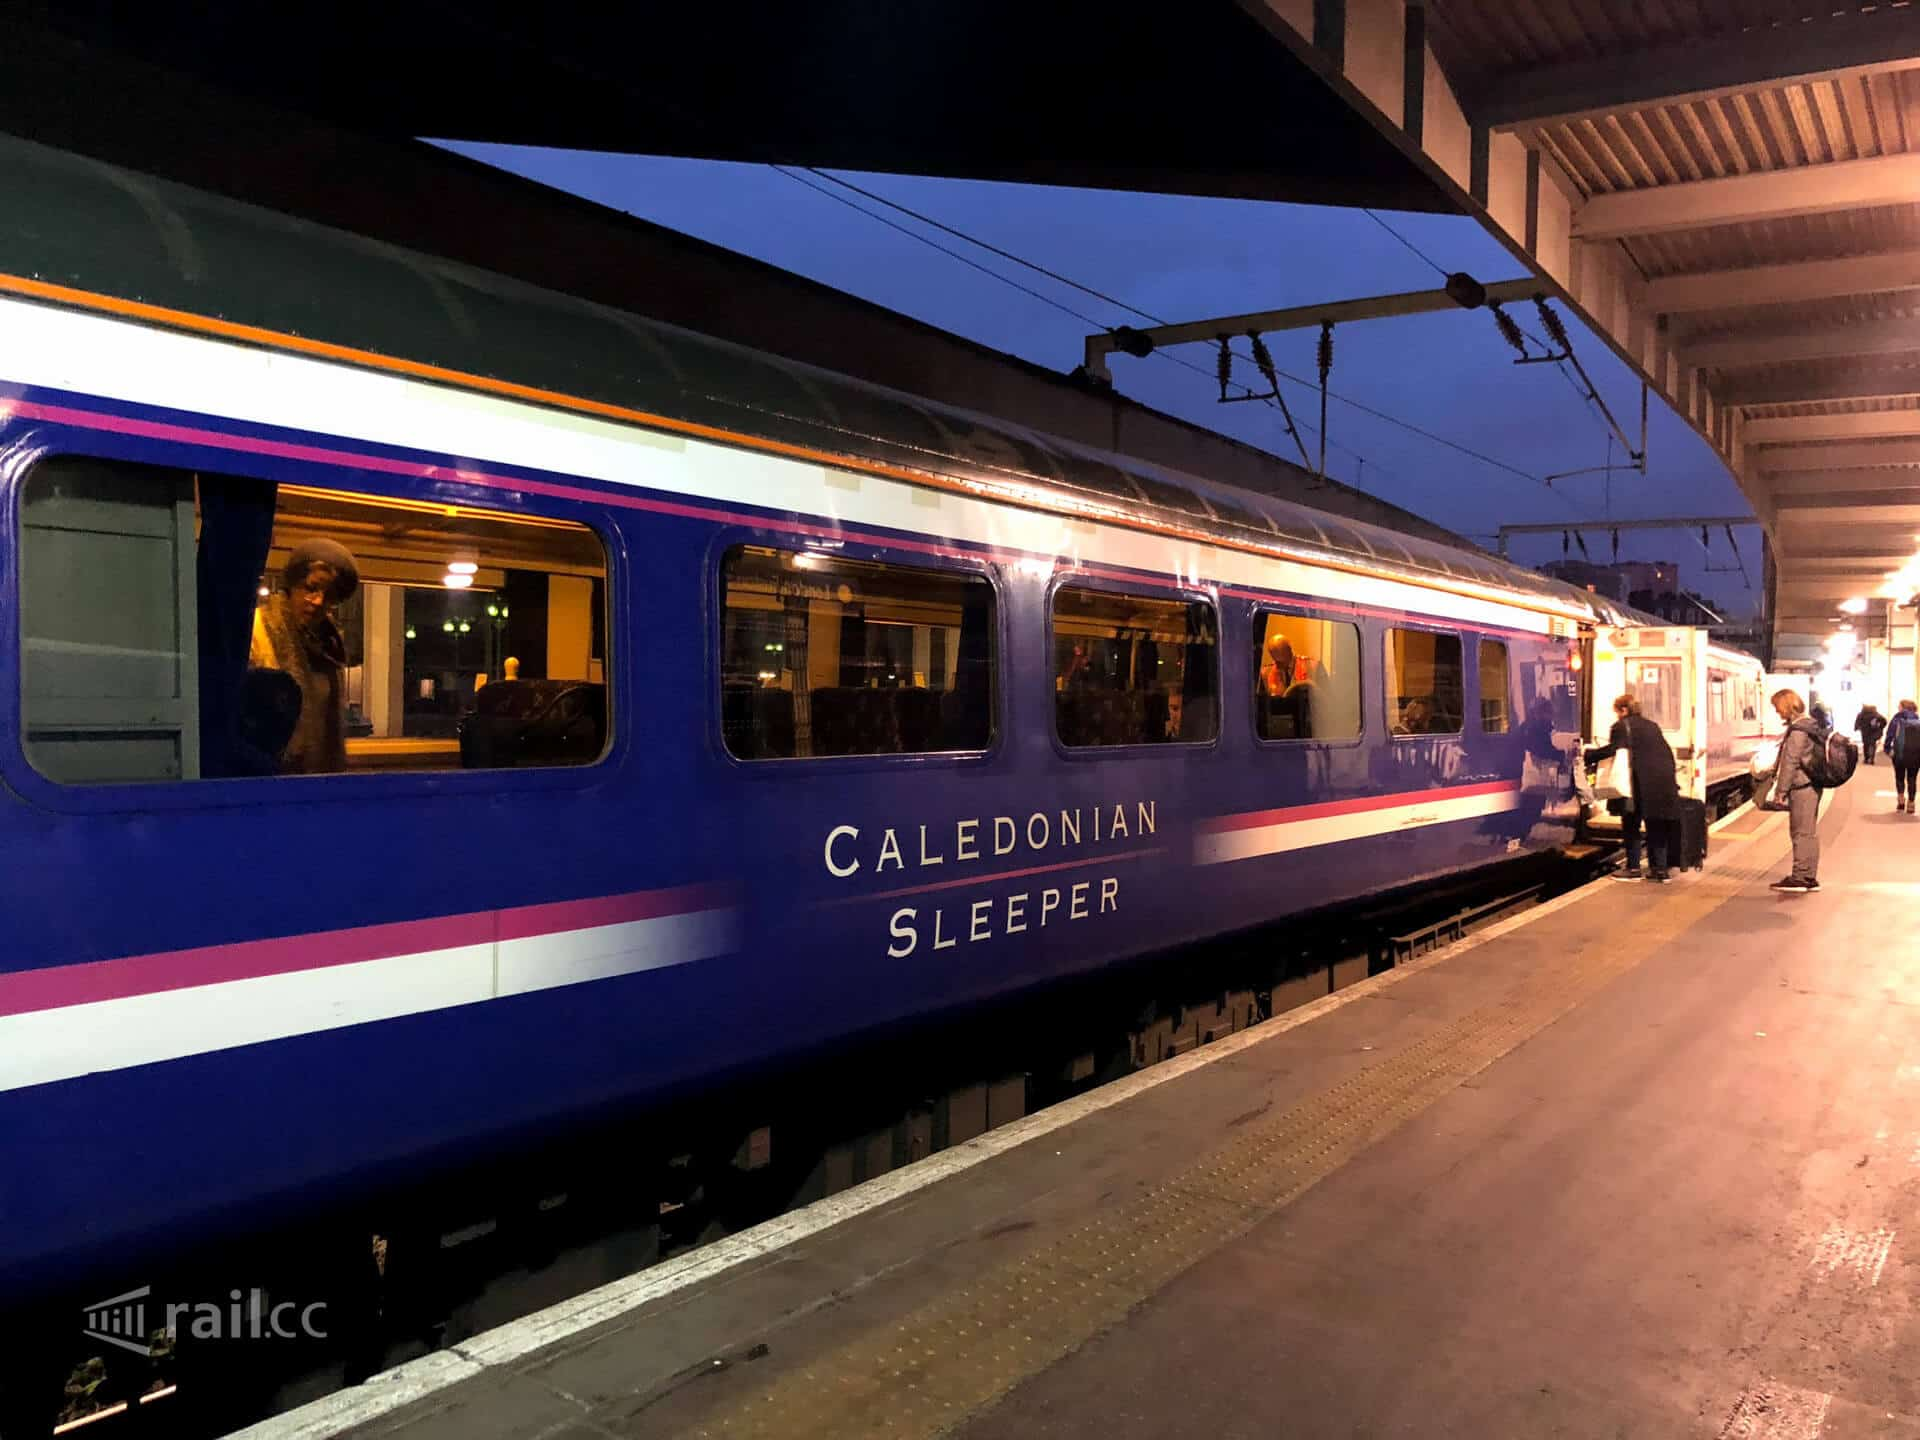 London To Inverness By Caledonian Sleeper Experience On A